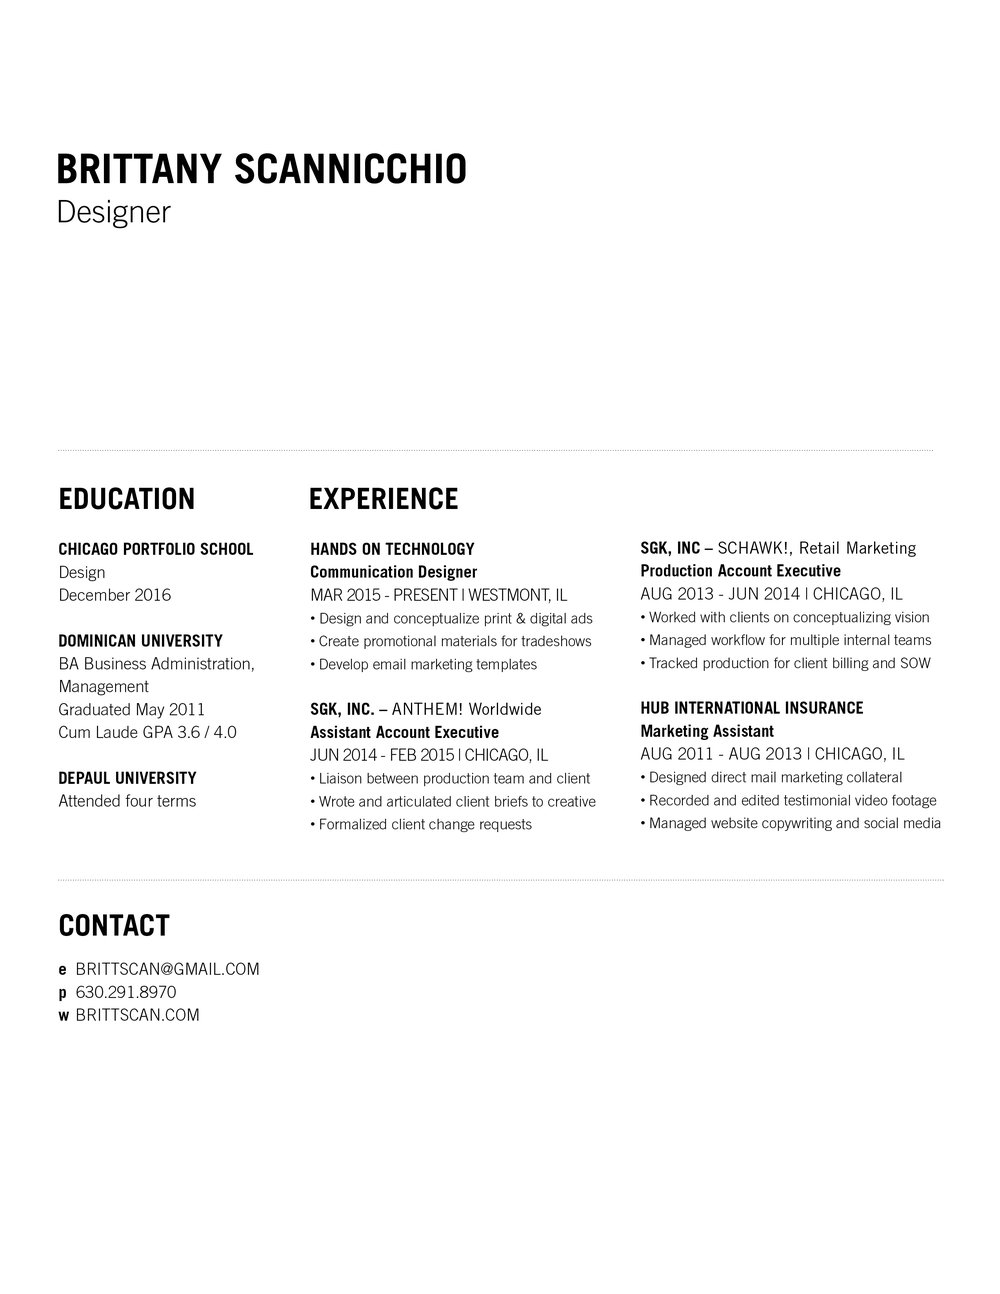 ScannicchioB_Resume